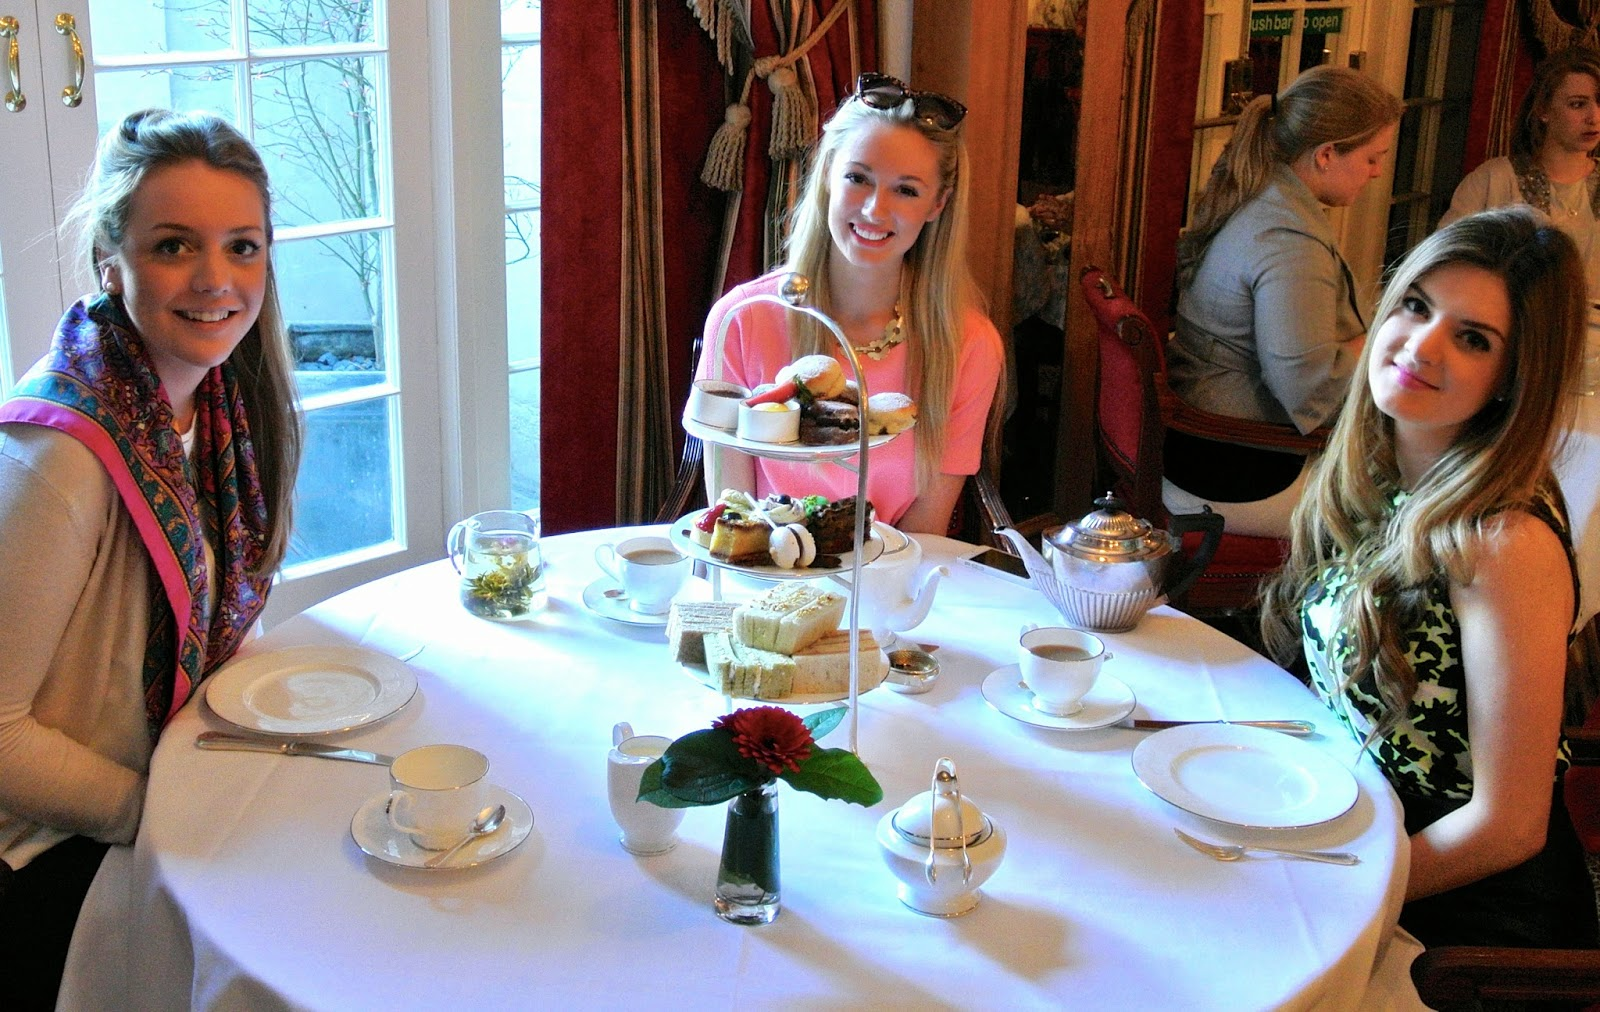 chesterfield mayfair afternoon tea reviews